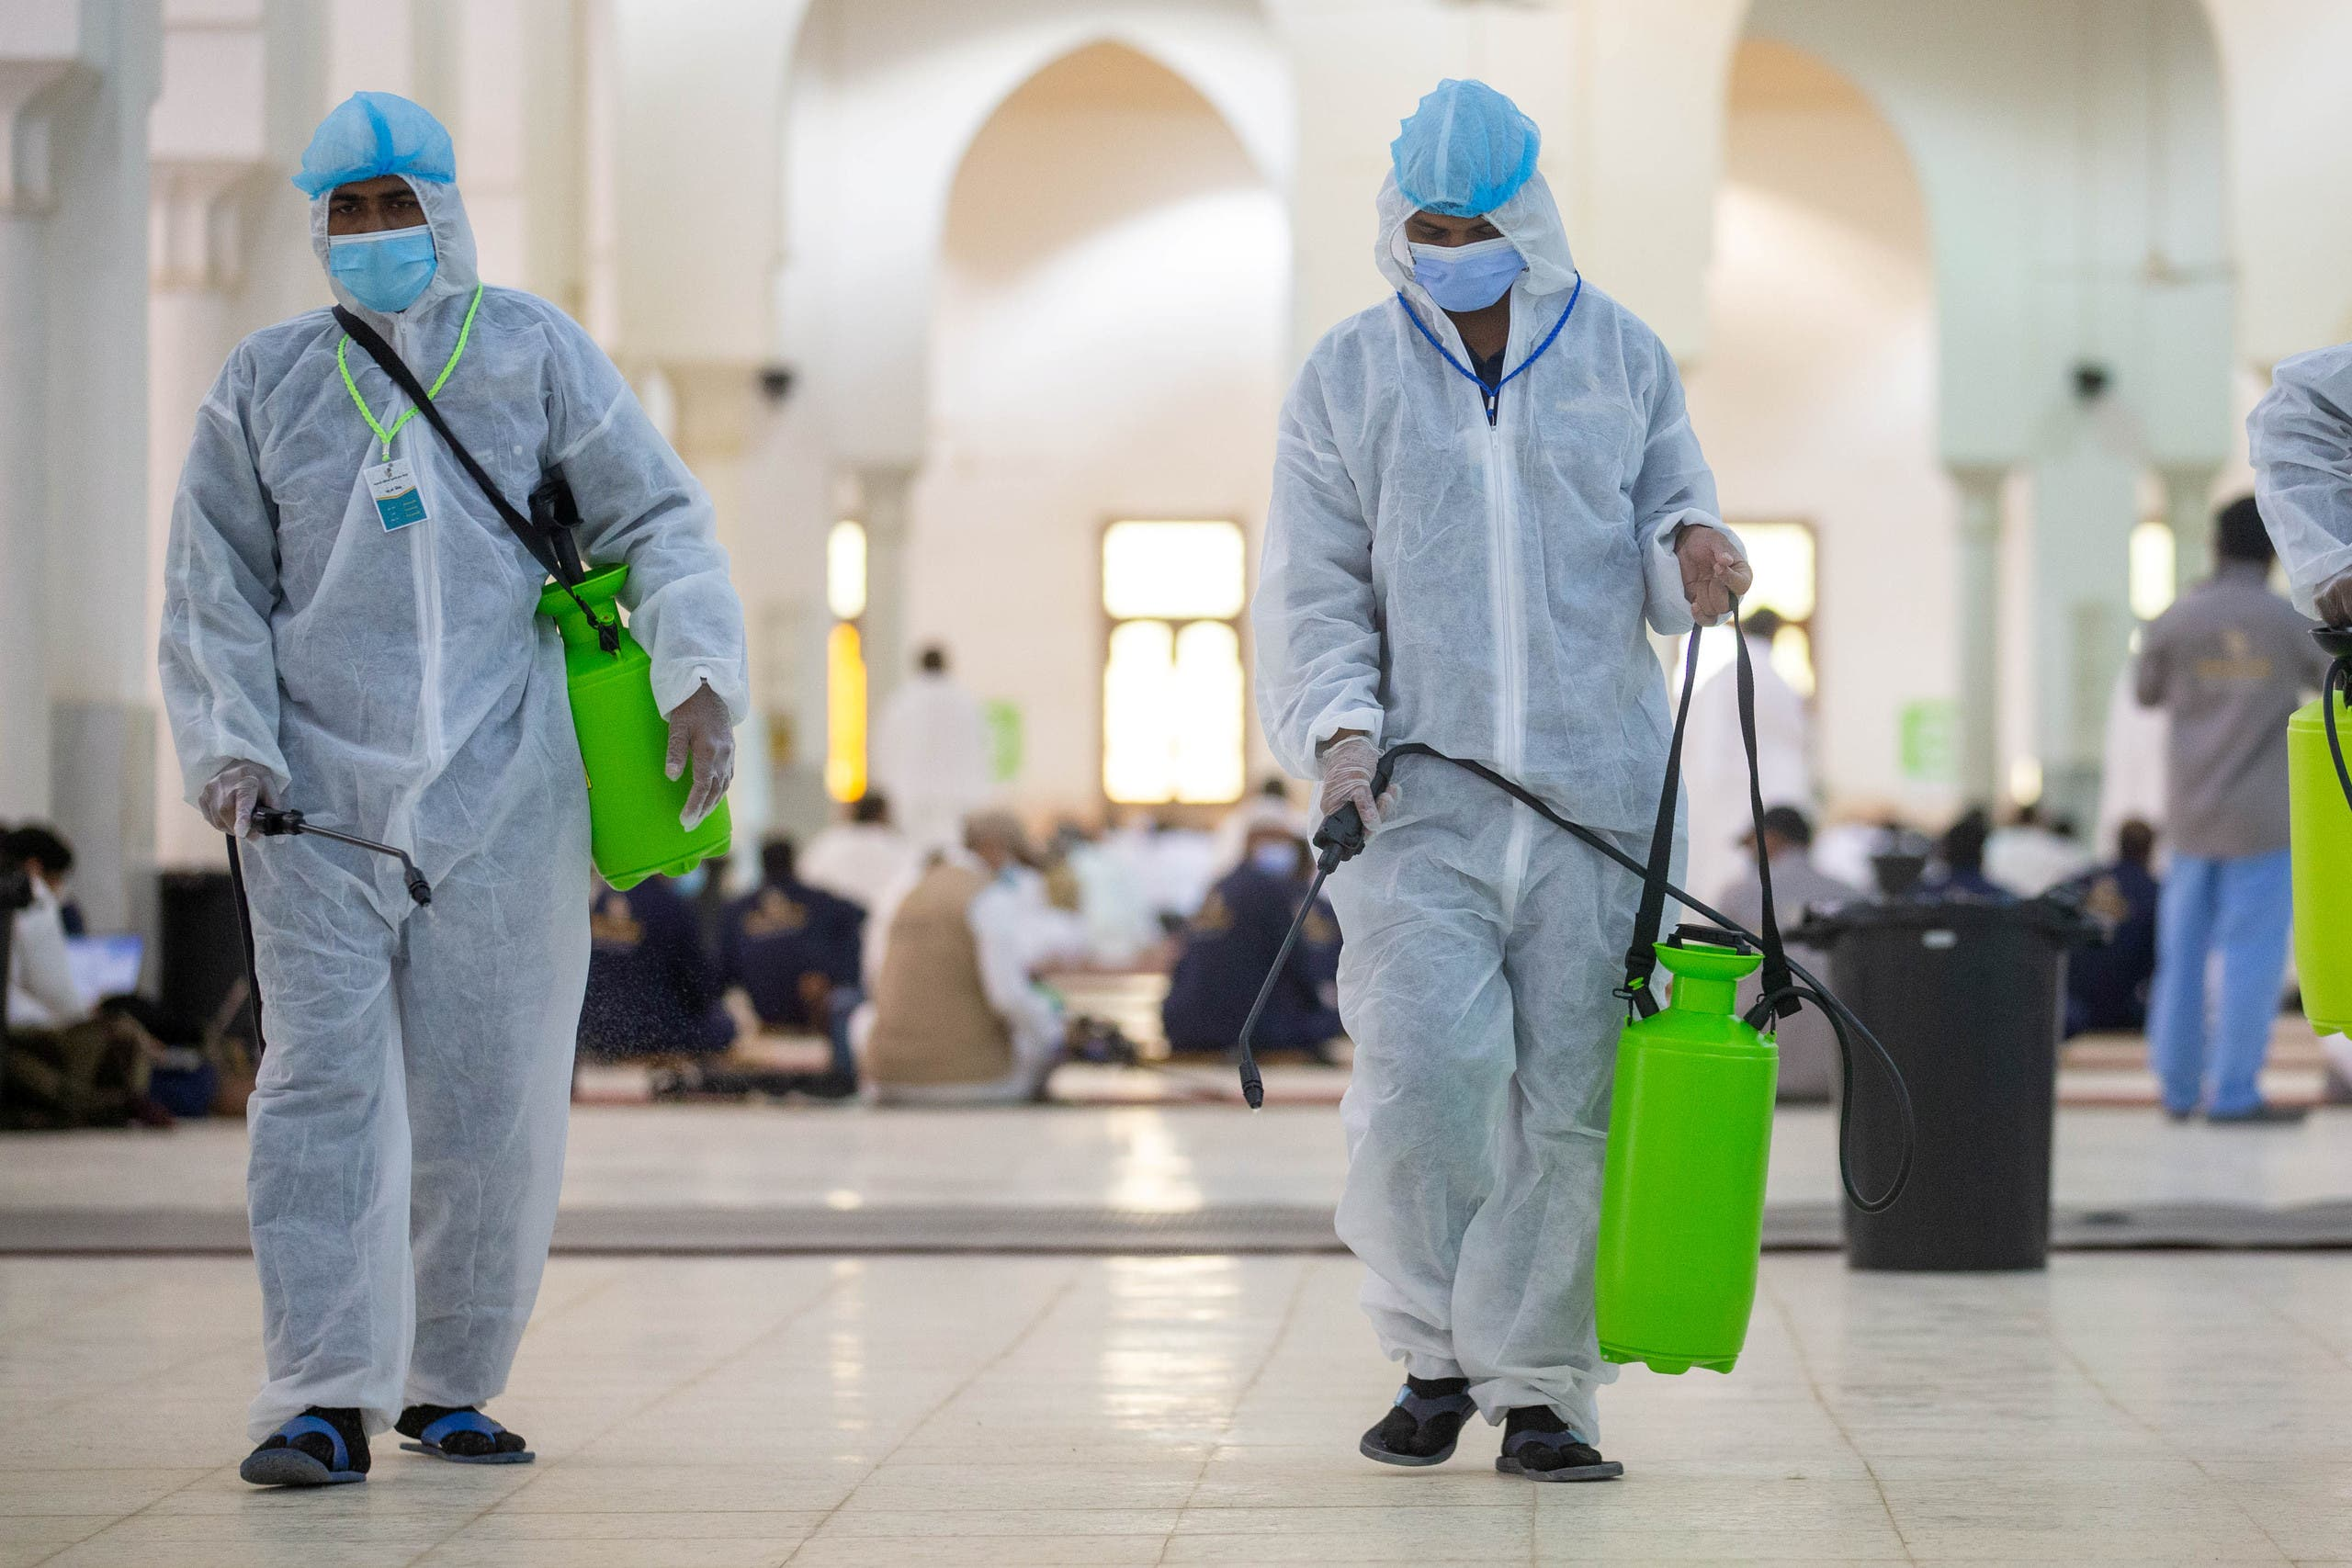 Health workers wearing personal protective equipment (PPE) disinfect the floor as Muslim pilgrims pray inside Namira Mosque in Arafat amid the coronavirus disease (COVID-19) pandemic, outside the holy city of Mecca, Saudi Arabia July 30, 2020. (File photo: Reuters)